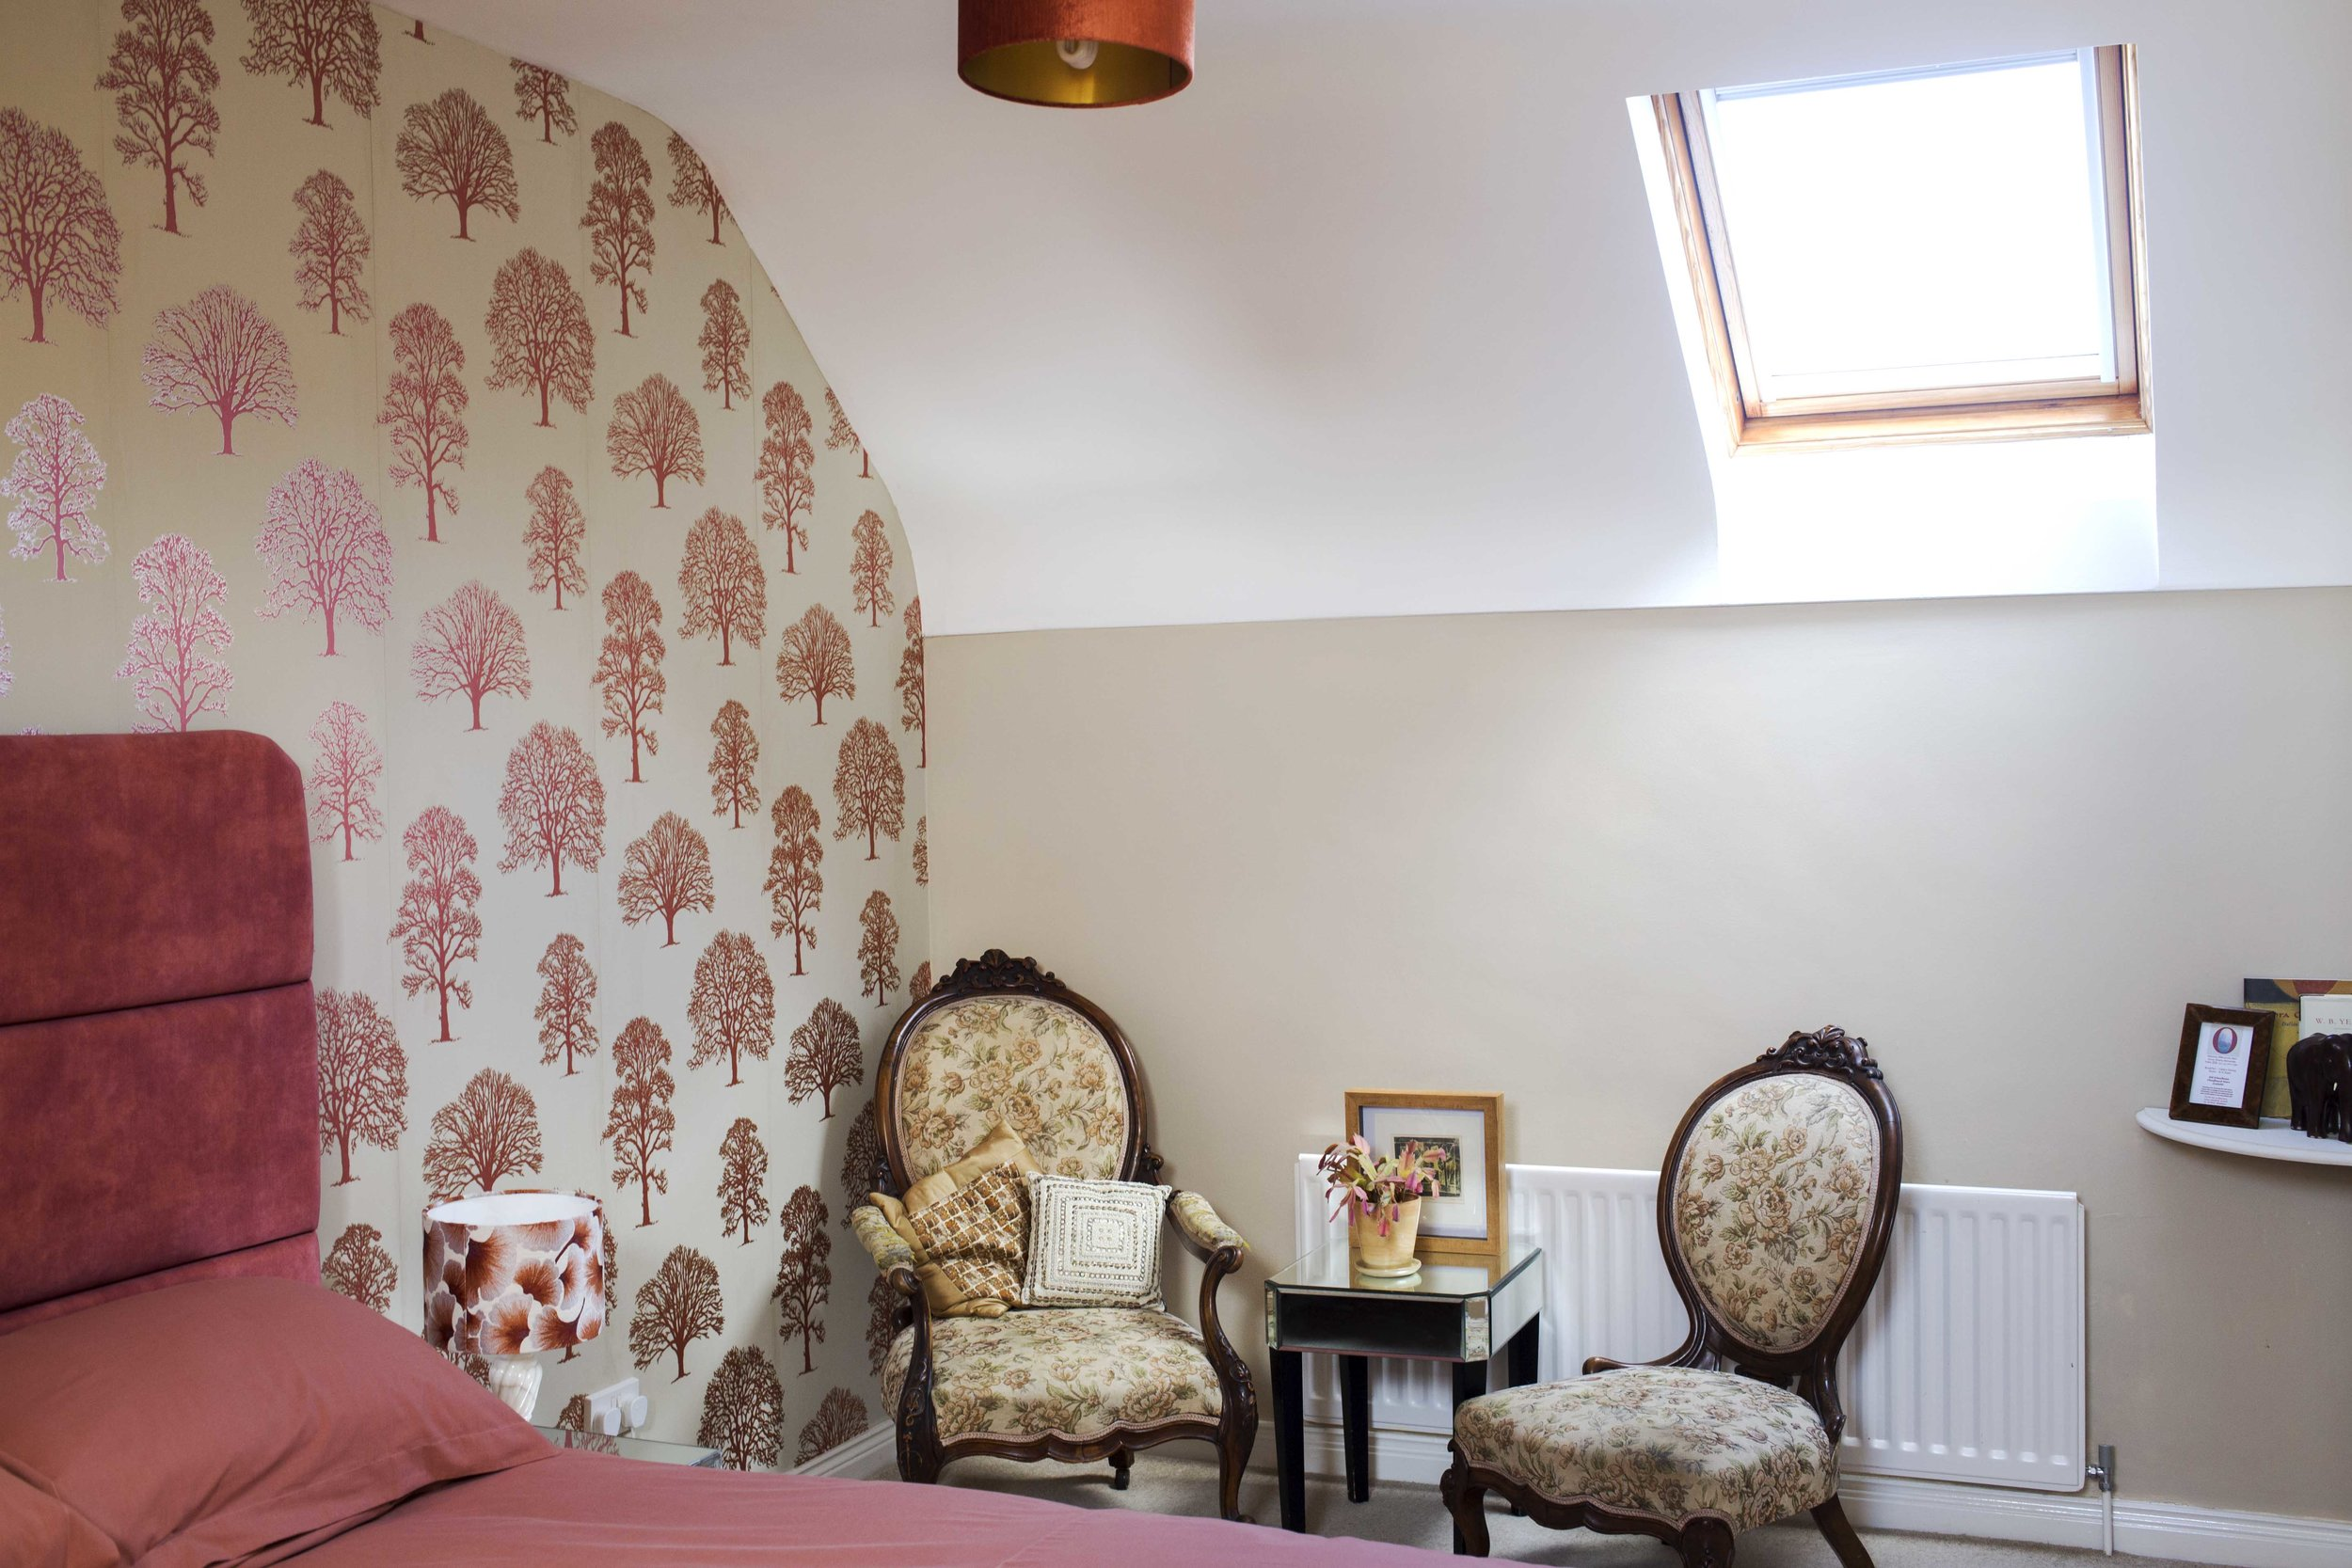 oak & gingko. room 3 - Located on first floorSuper King solid wood bed with memory foam mattressSeated area with hospitality traySmall ensuite with shower facilityFrom £40 pp based on two sharing.Single supplement - additional £20 applies.